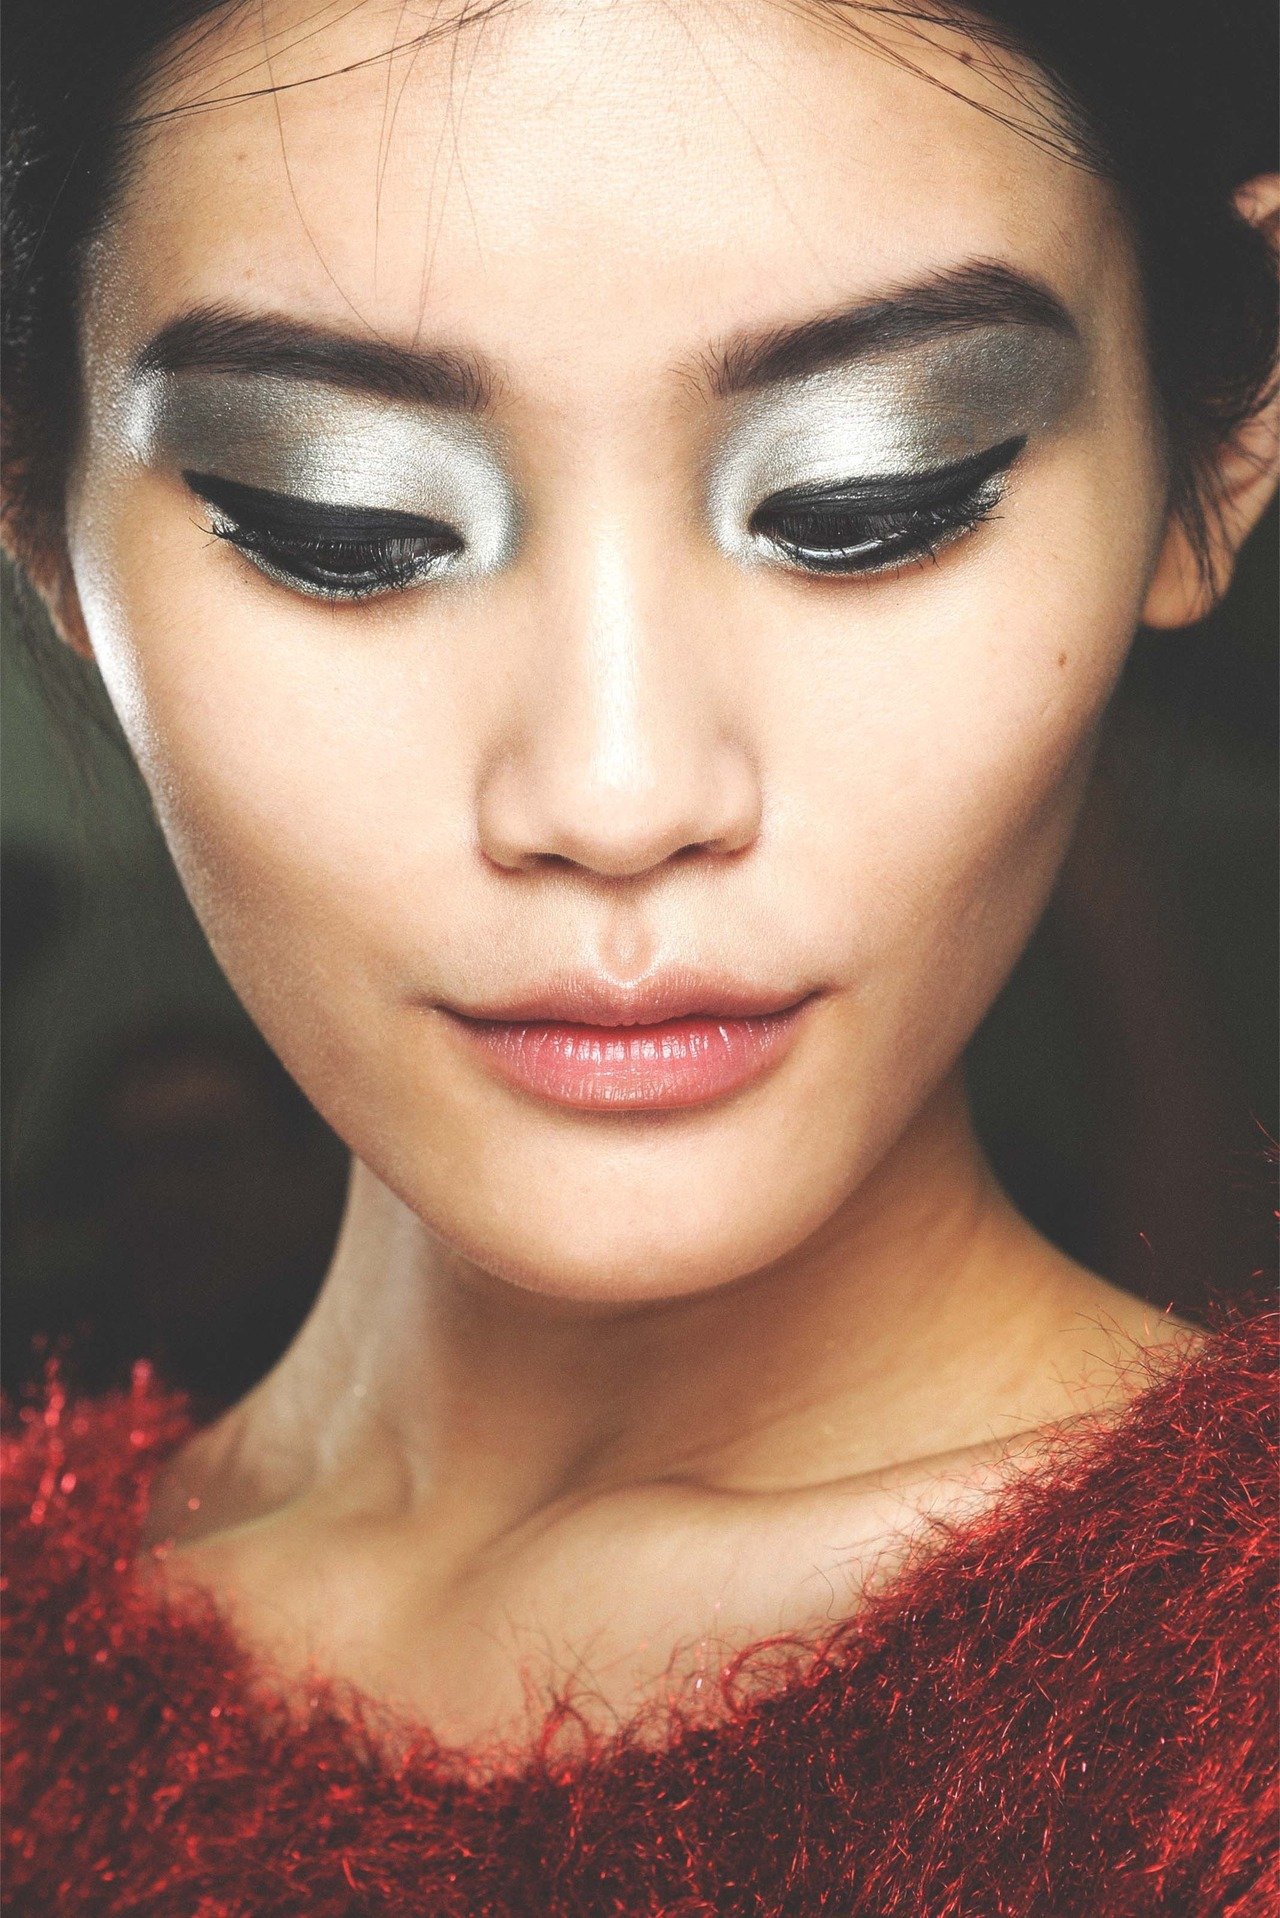 chanel s/s 2013 rtw, ming xi backstage